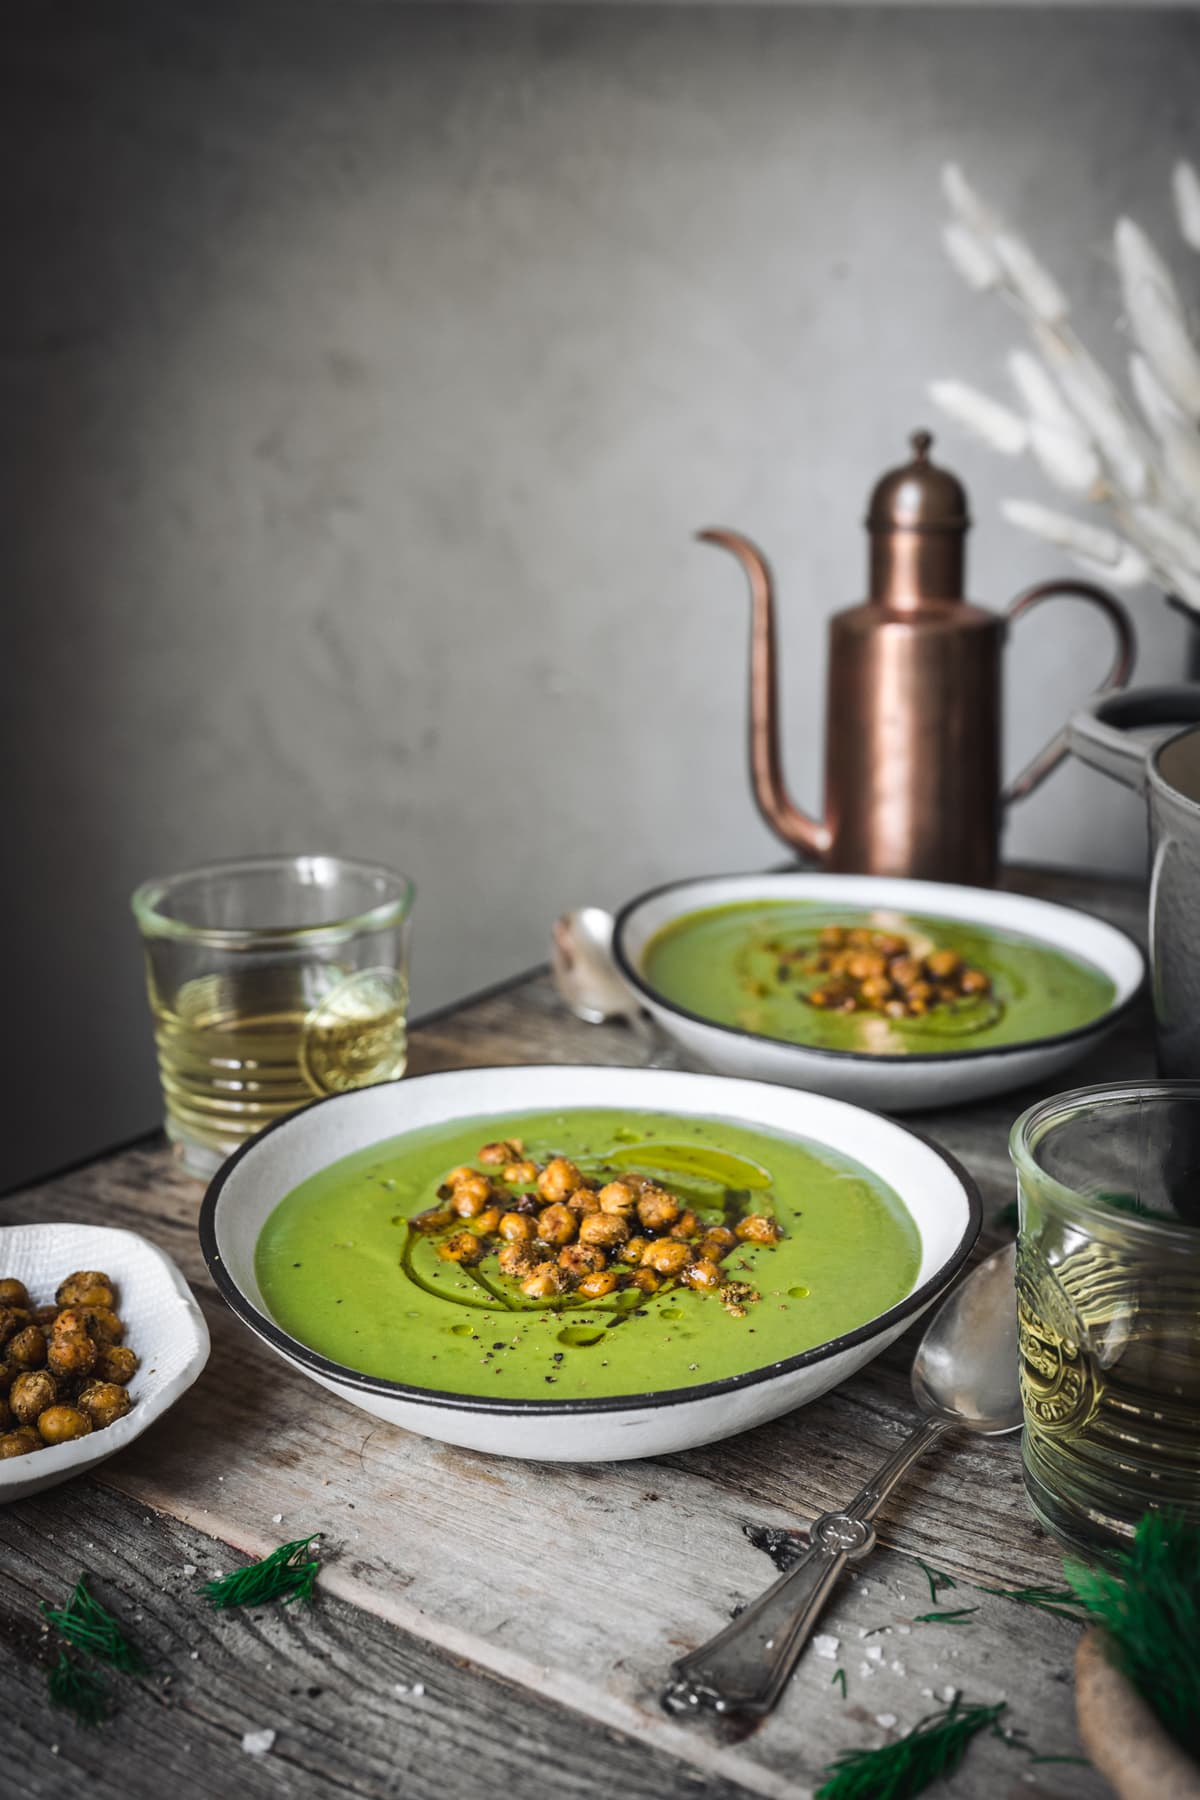 side view of vegan broccoli potato soup in a white bowl on wood table